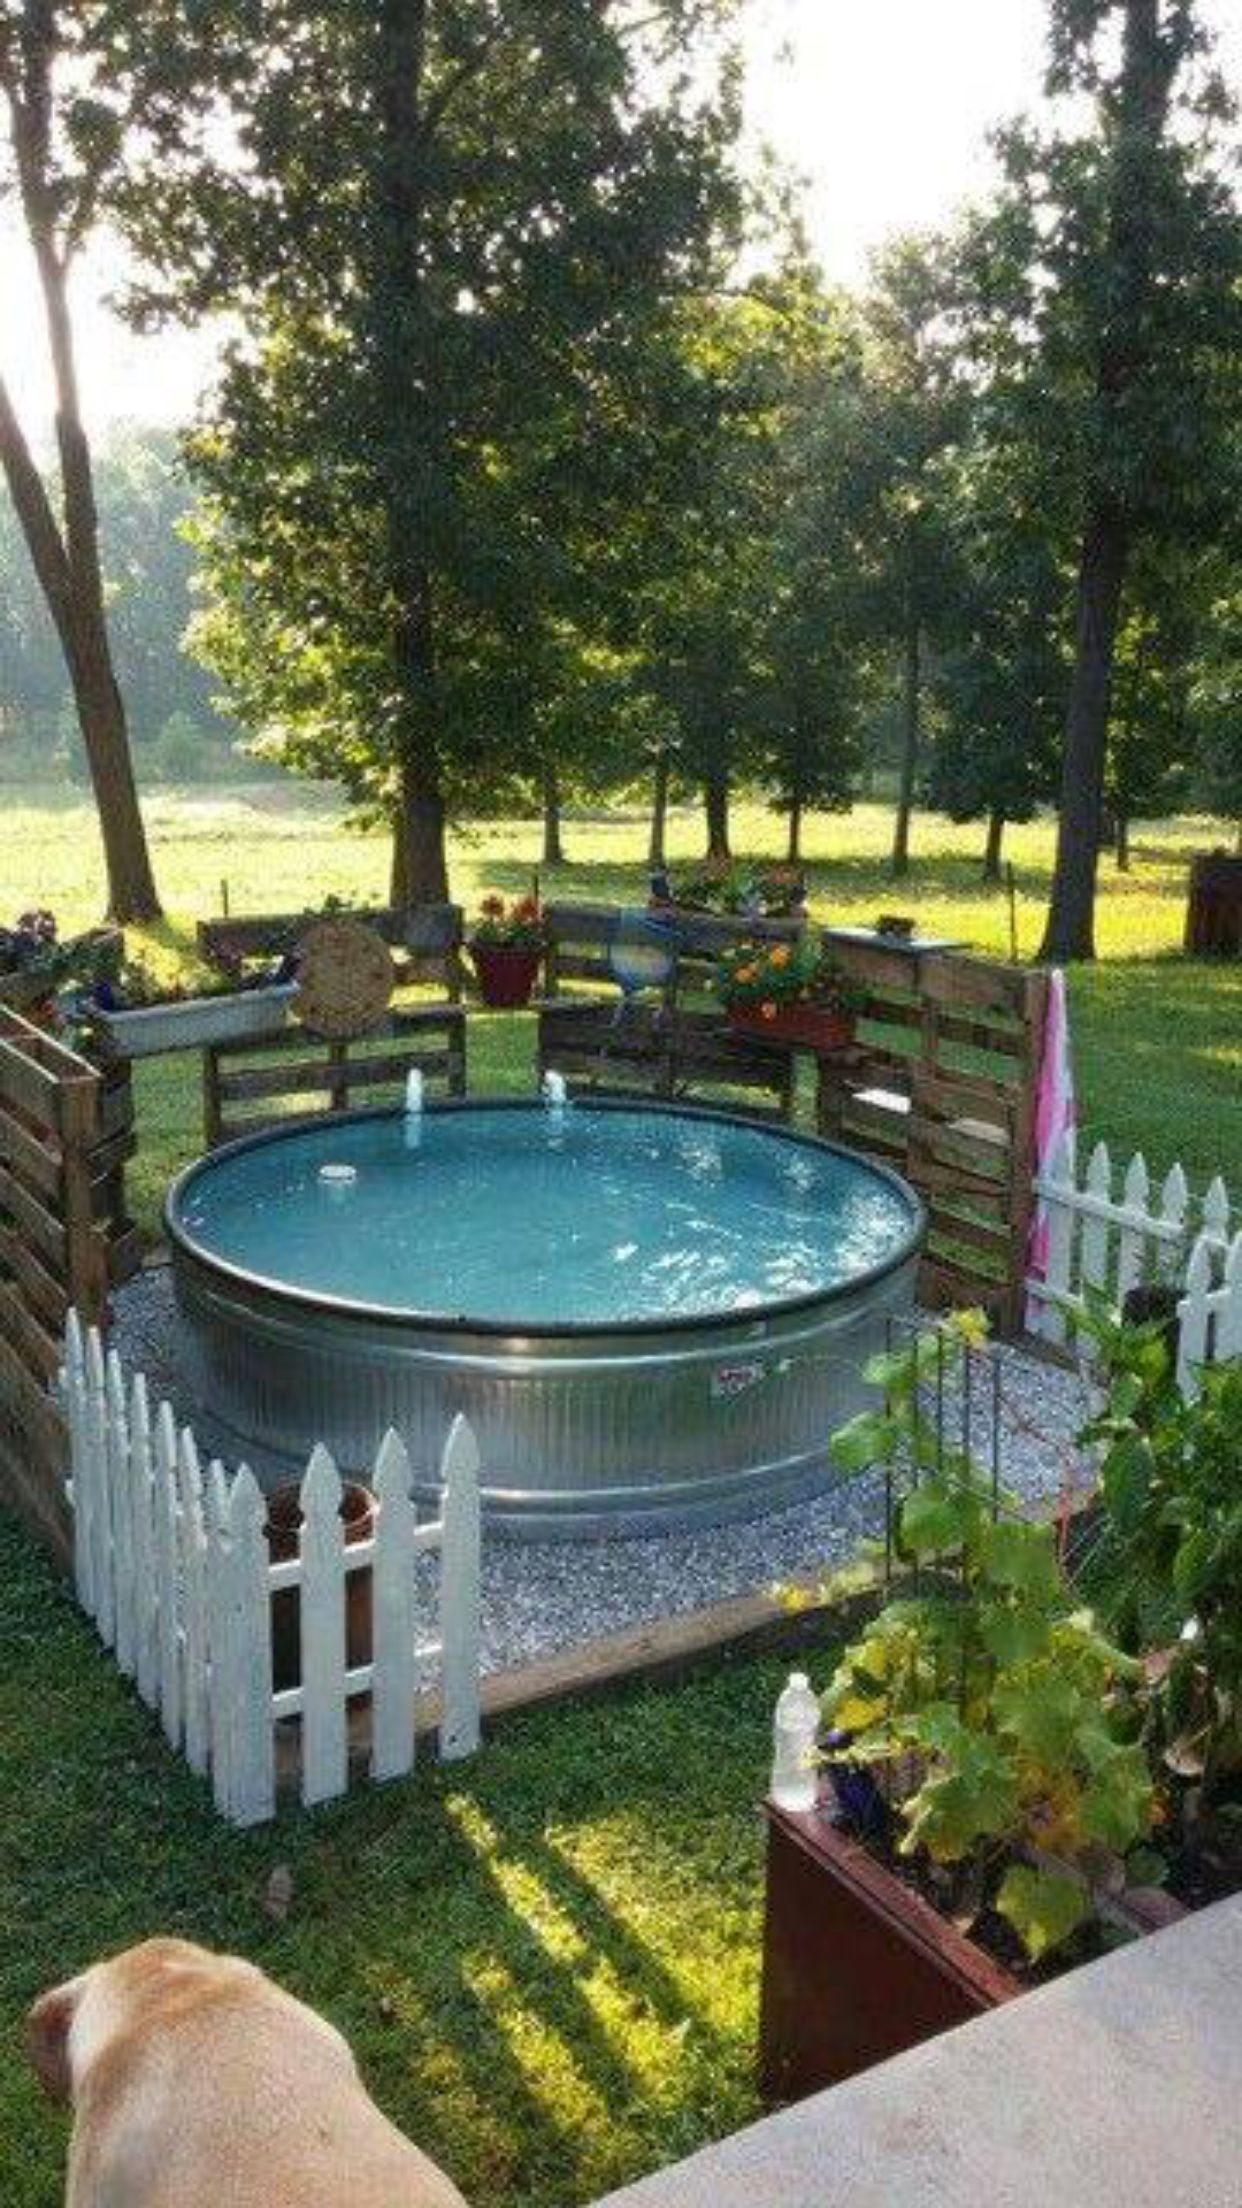 hot jacuzzi outdoor u pinterest portable spas trough pool for tubs tub stiprut market house info news the water spa ideas of